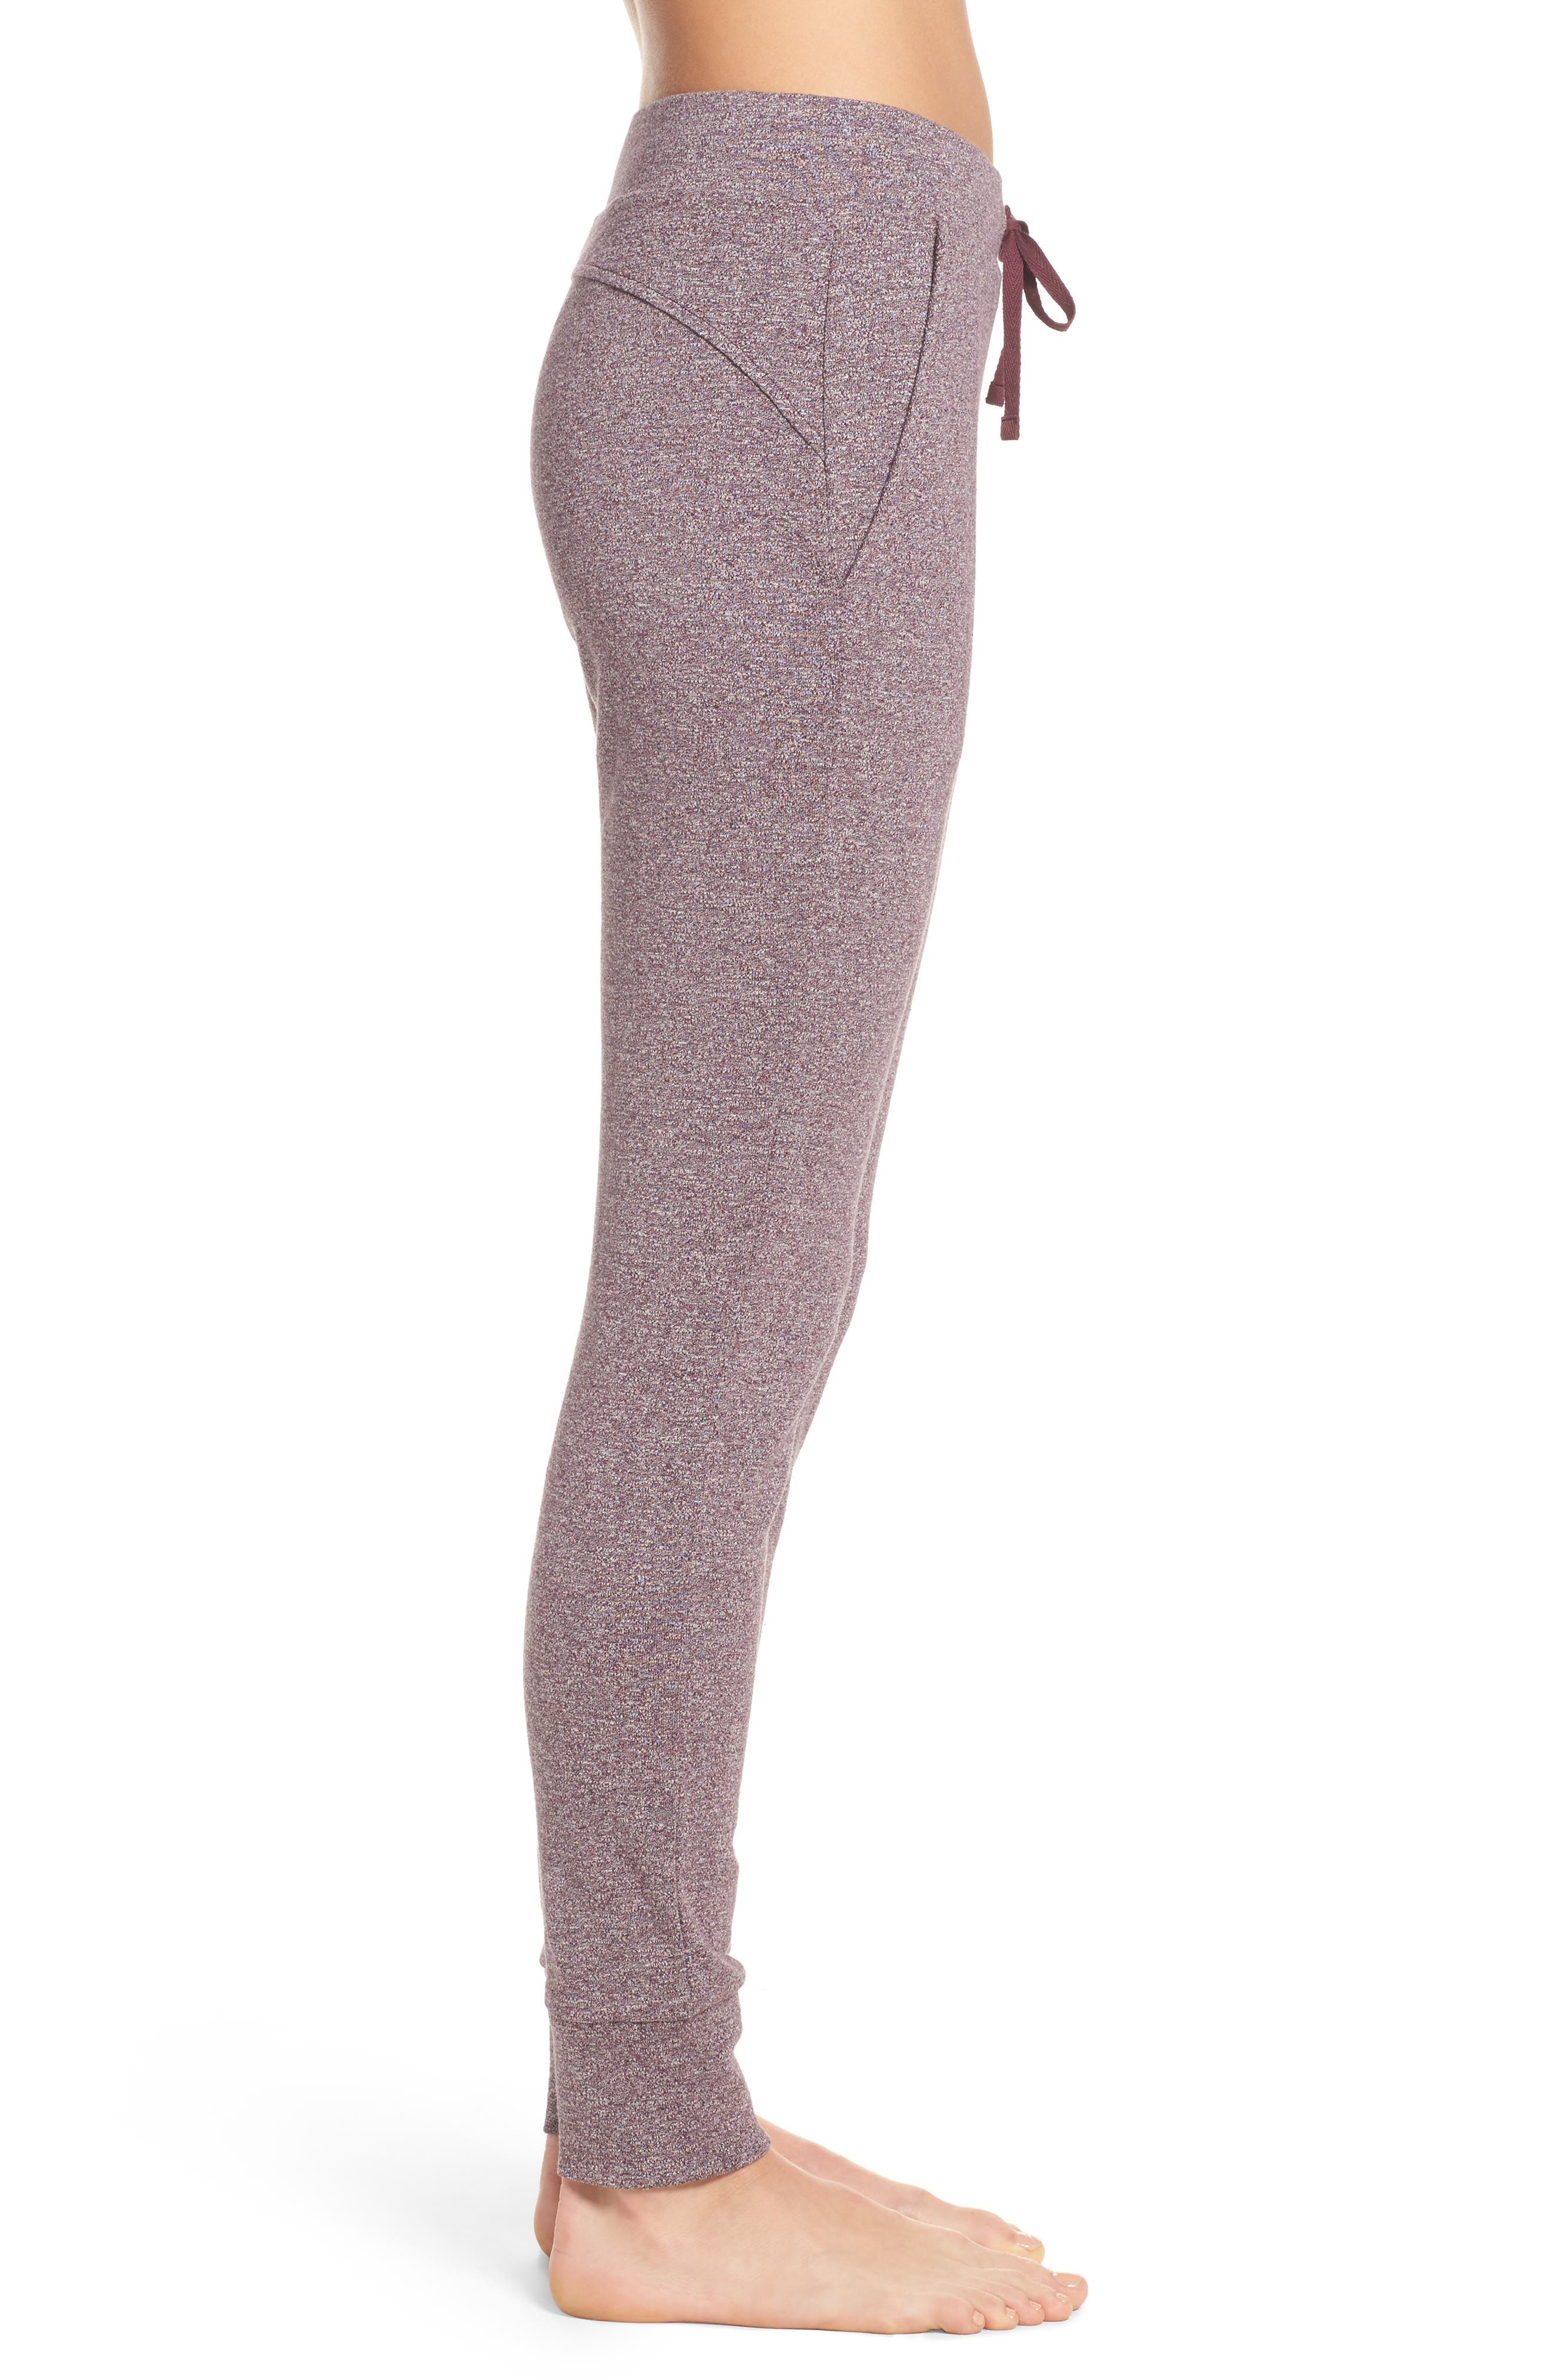 Clementine Cotton Sweatpants,                             Alternate thumbnail 3, color,                             Nightshade Heather